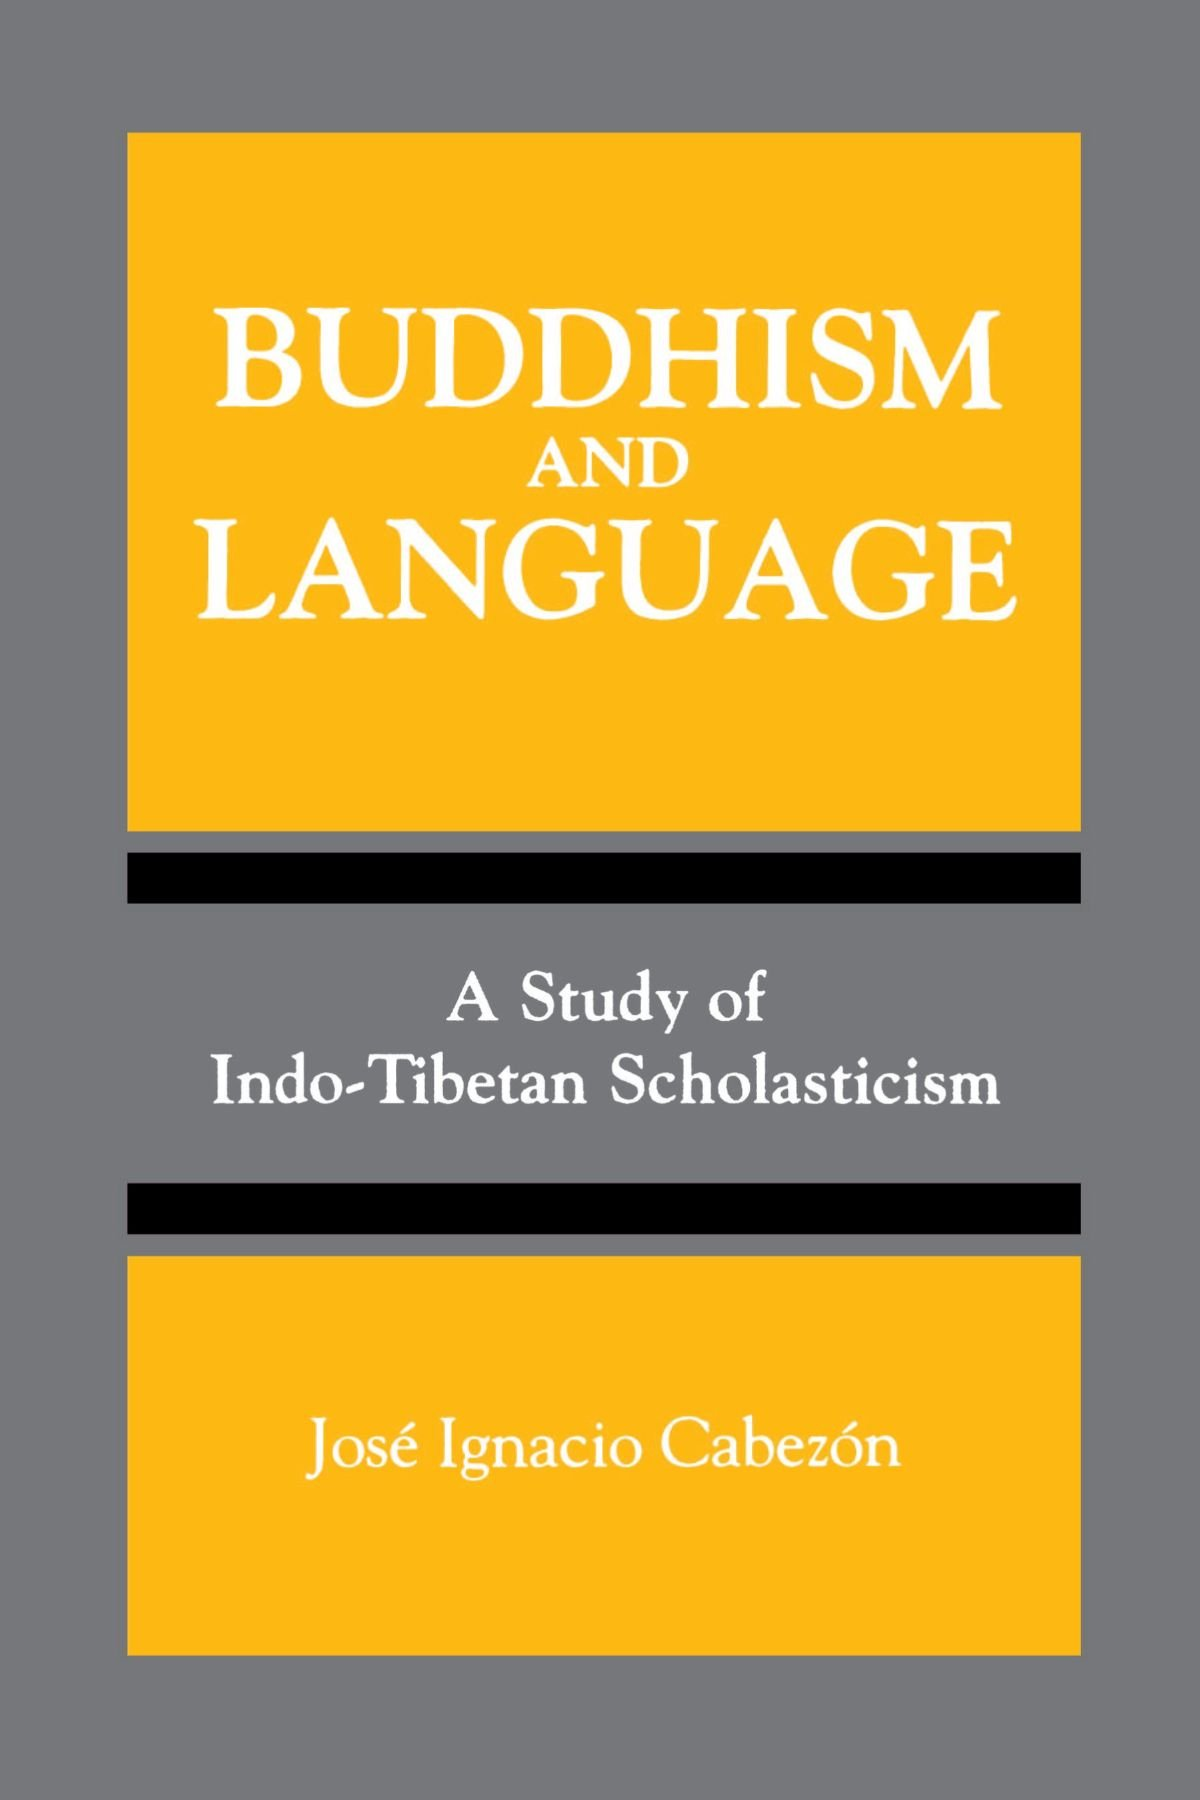 Buddhism and Language: A Study of Indo-Tibetan Scholasticism (SUNY series, Toward a Comparative Philosophy of Religions) by Brand: State University of New York Press